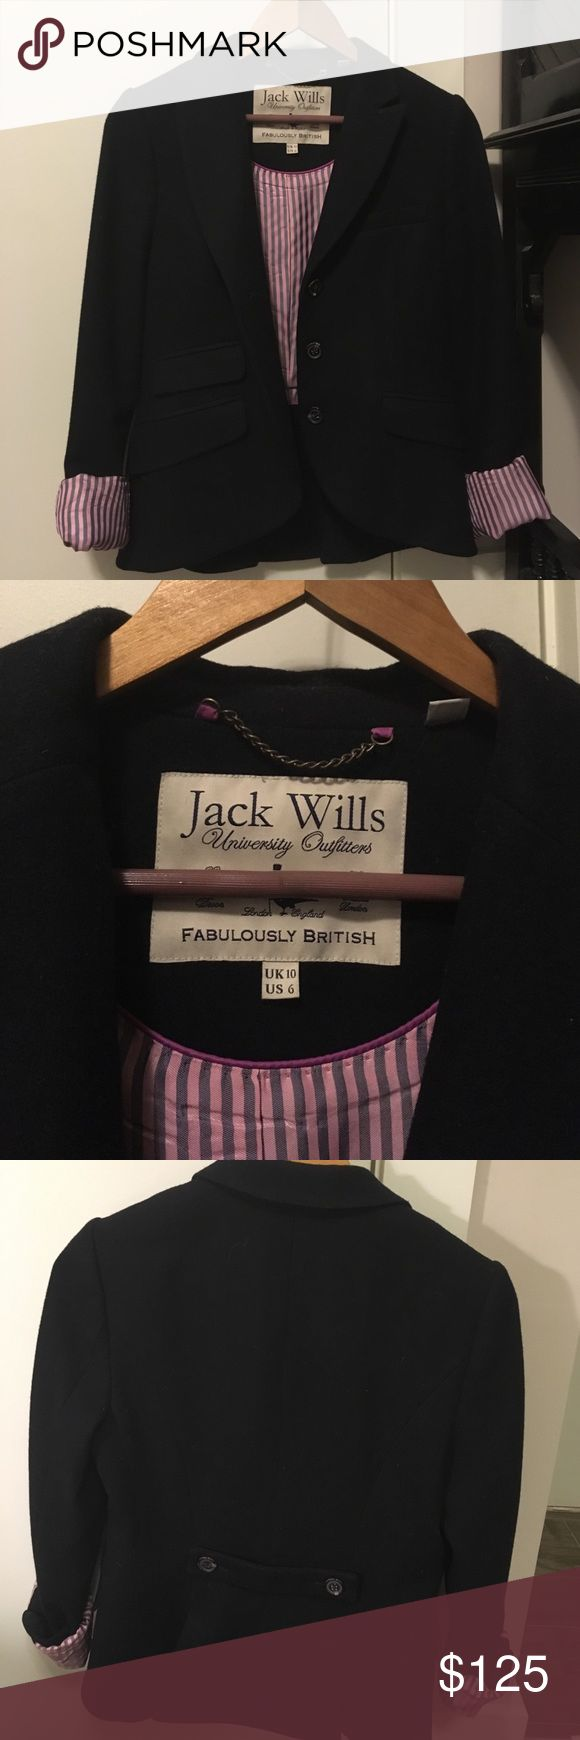 Jack Wills Hunt Style Jacket Gorgeous wool jacket with pink and blue striped lining. Jack Wills Jackets & Coats Blazers